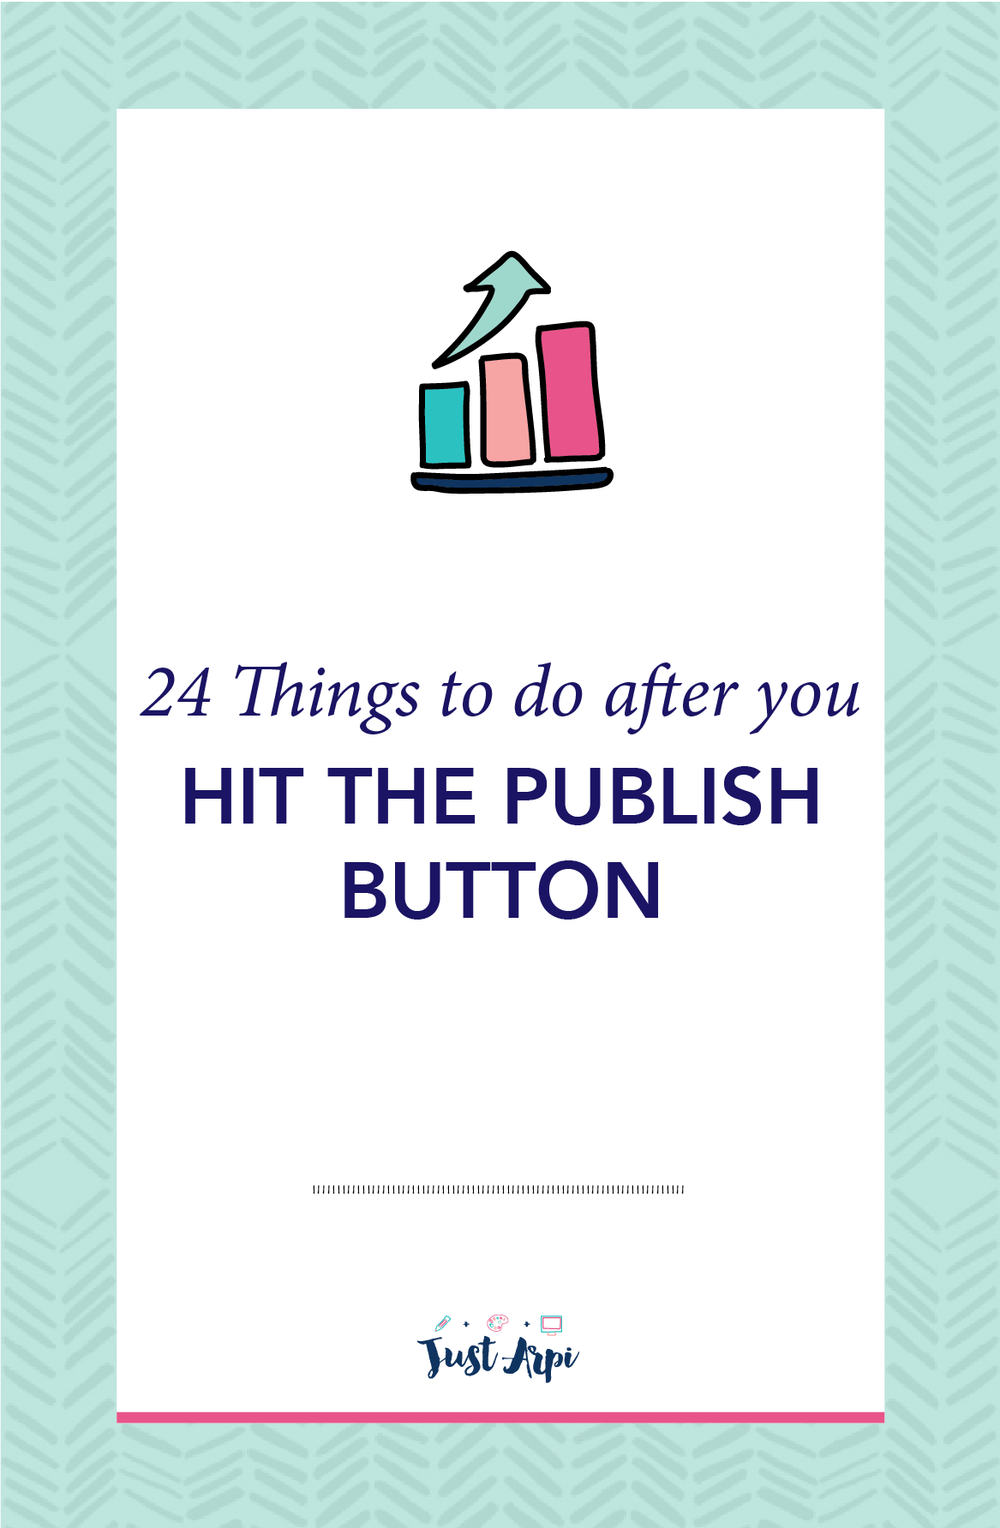 24-things-to-do-after-you-hit-the-publish-button-05.png